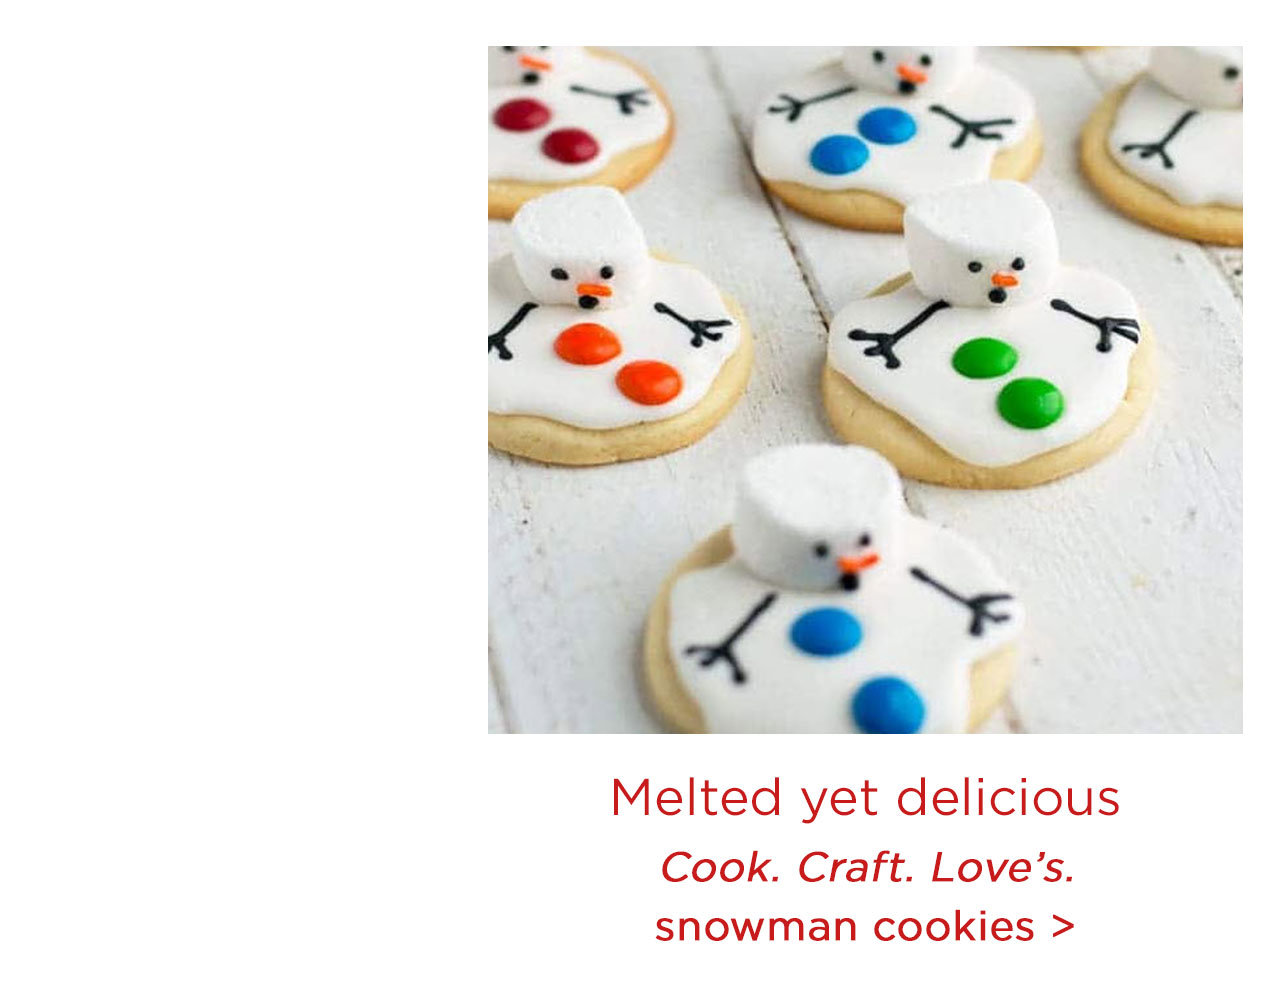 Cook. Craft. Love's. snowman cookies